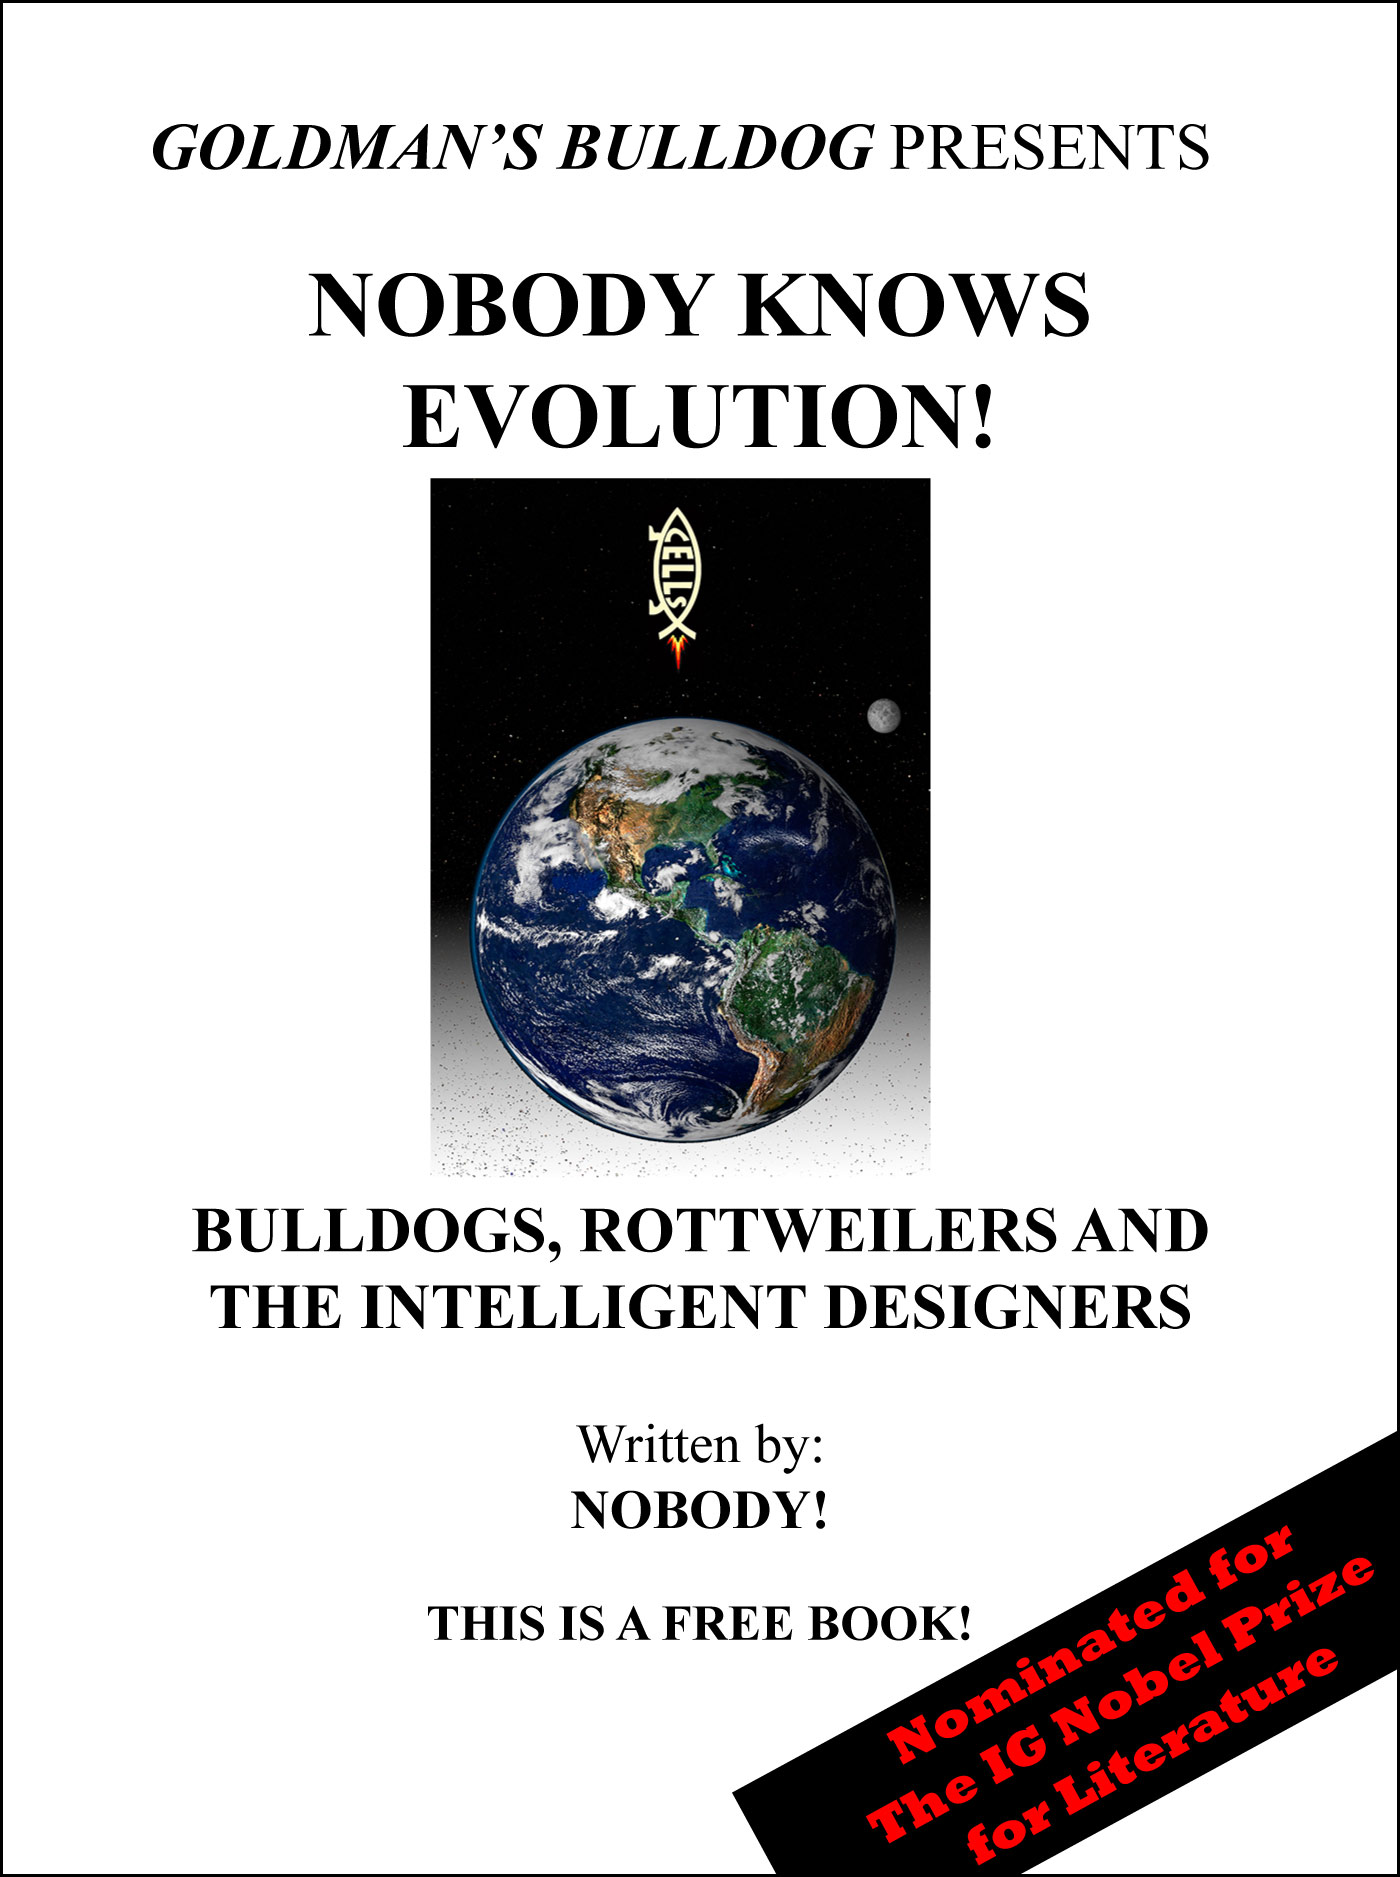 (Nobody Knows Evolution Link)